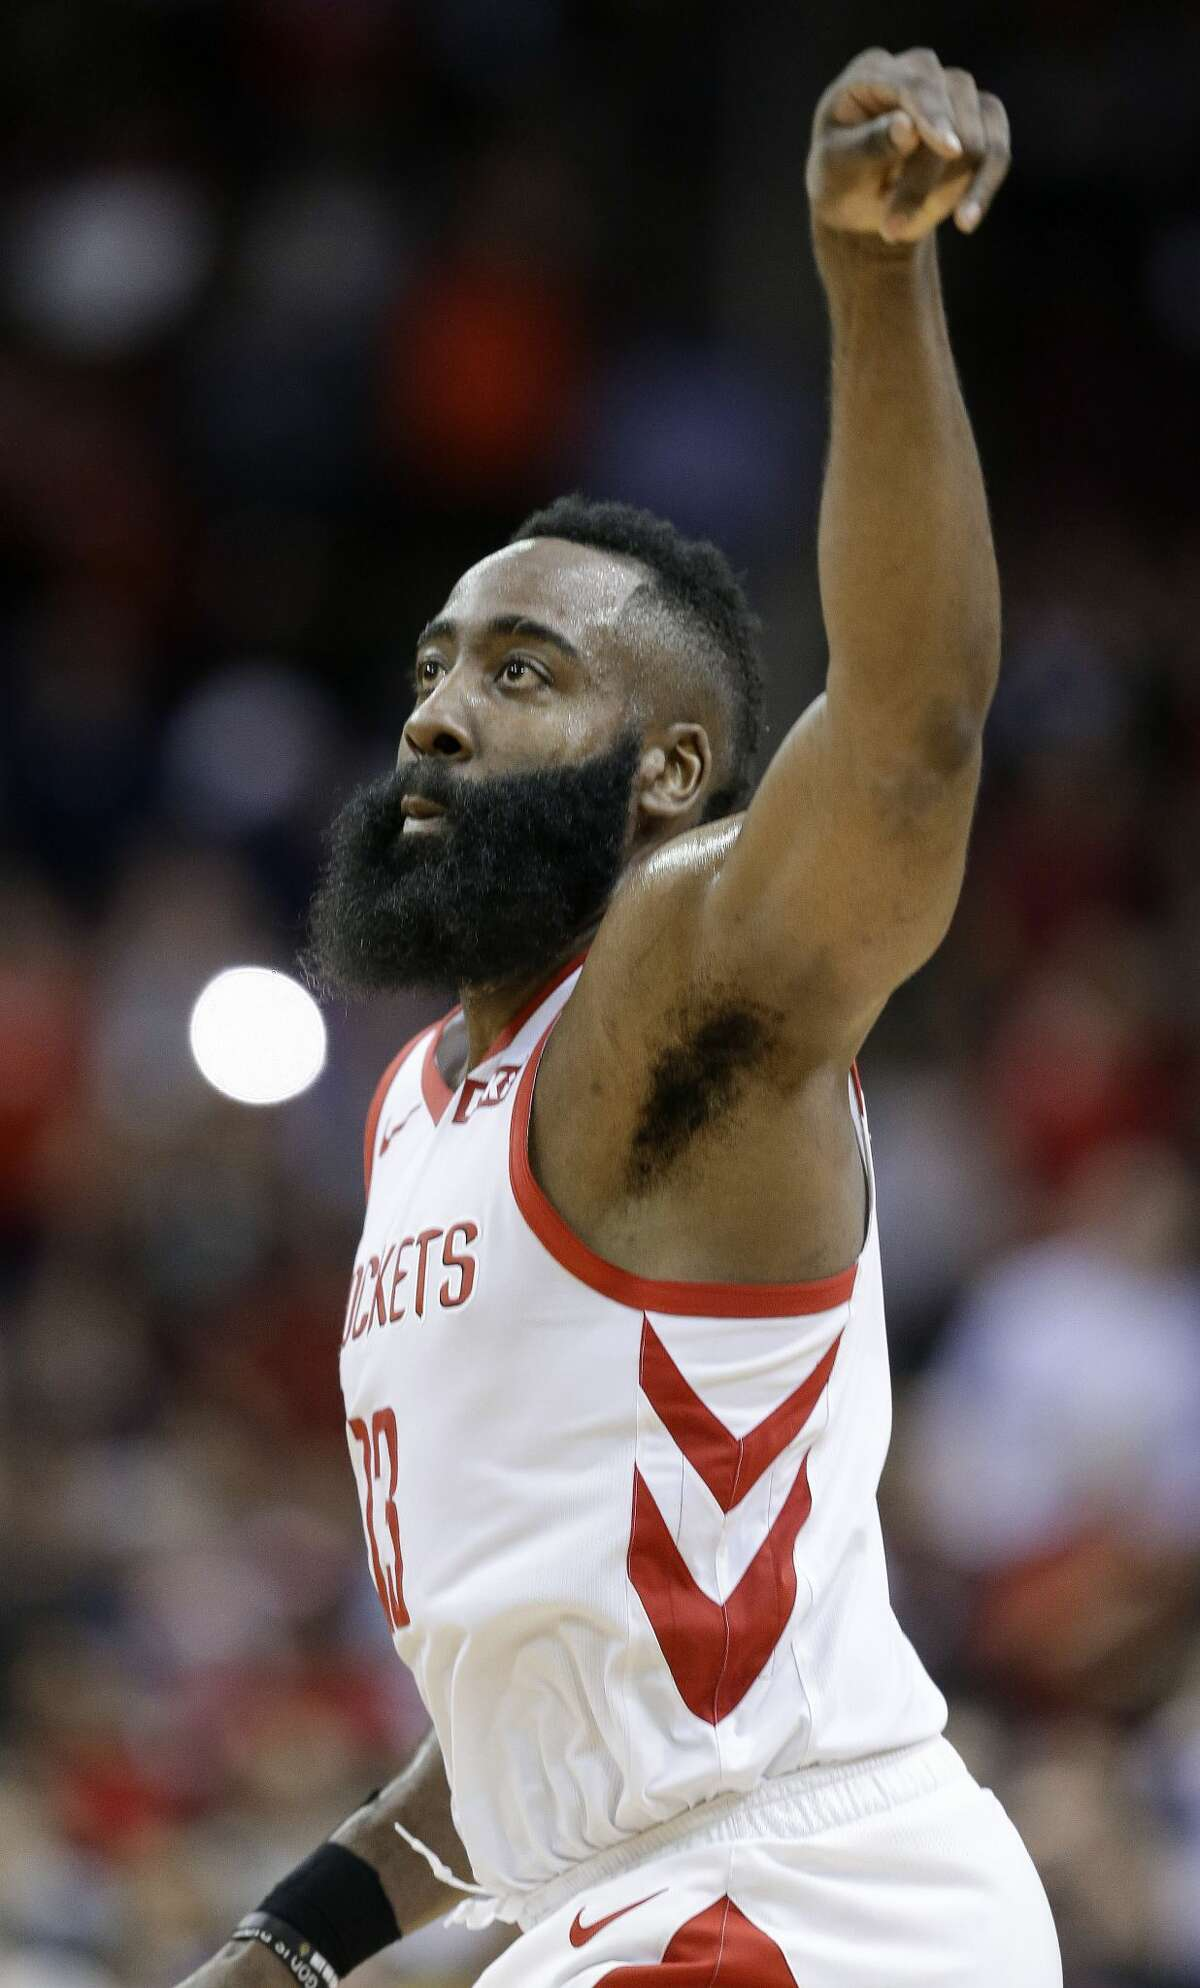 Houston Rockets guard James Harden watches his 3-point basket during the second half of the team's NBA basketball game against the Sacramento Kings, Saturday, March 30, 2019, in Houston. Houston won 119-108. (AP Photo/Eric Christian Smith)